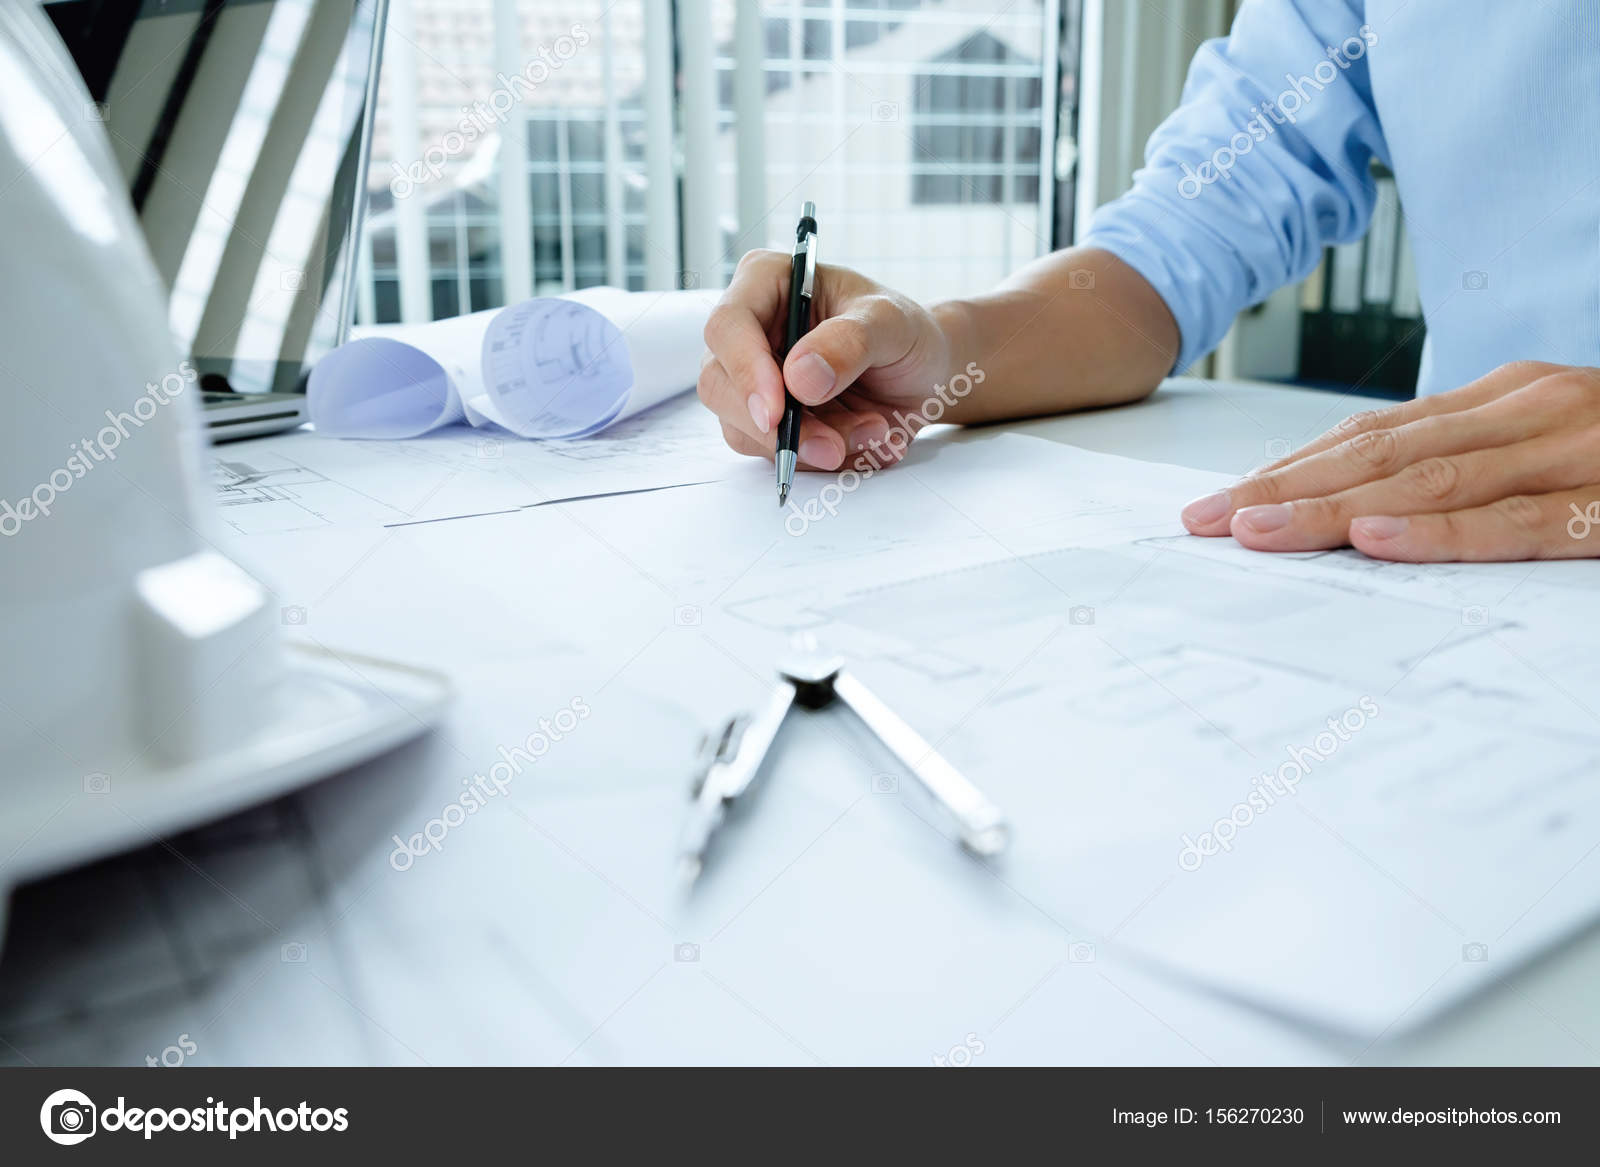 depositphotos 156270230 stock photo engineer meeting for architectural project - Contacts